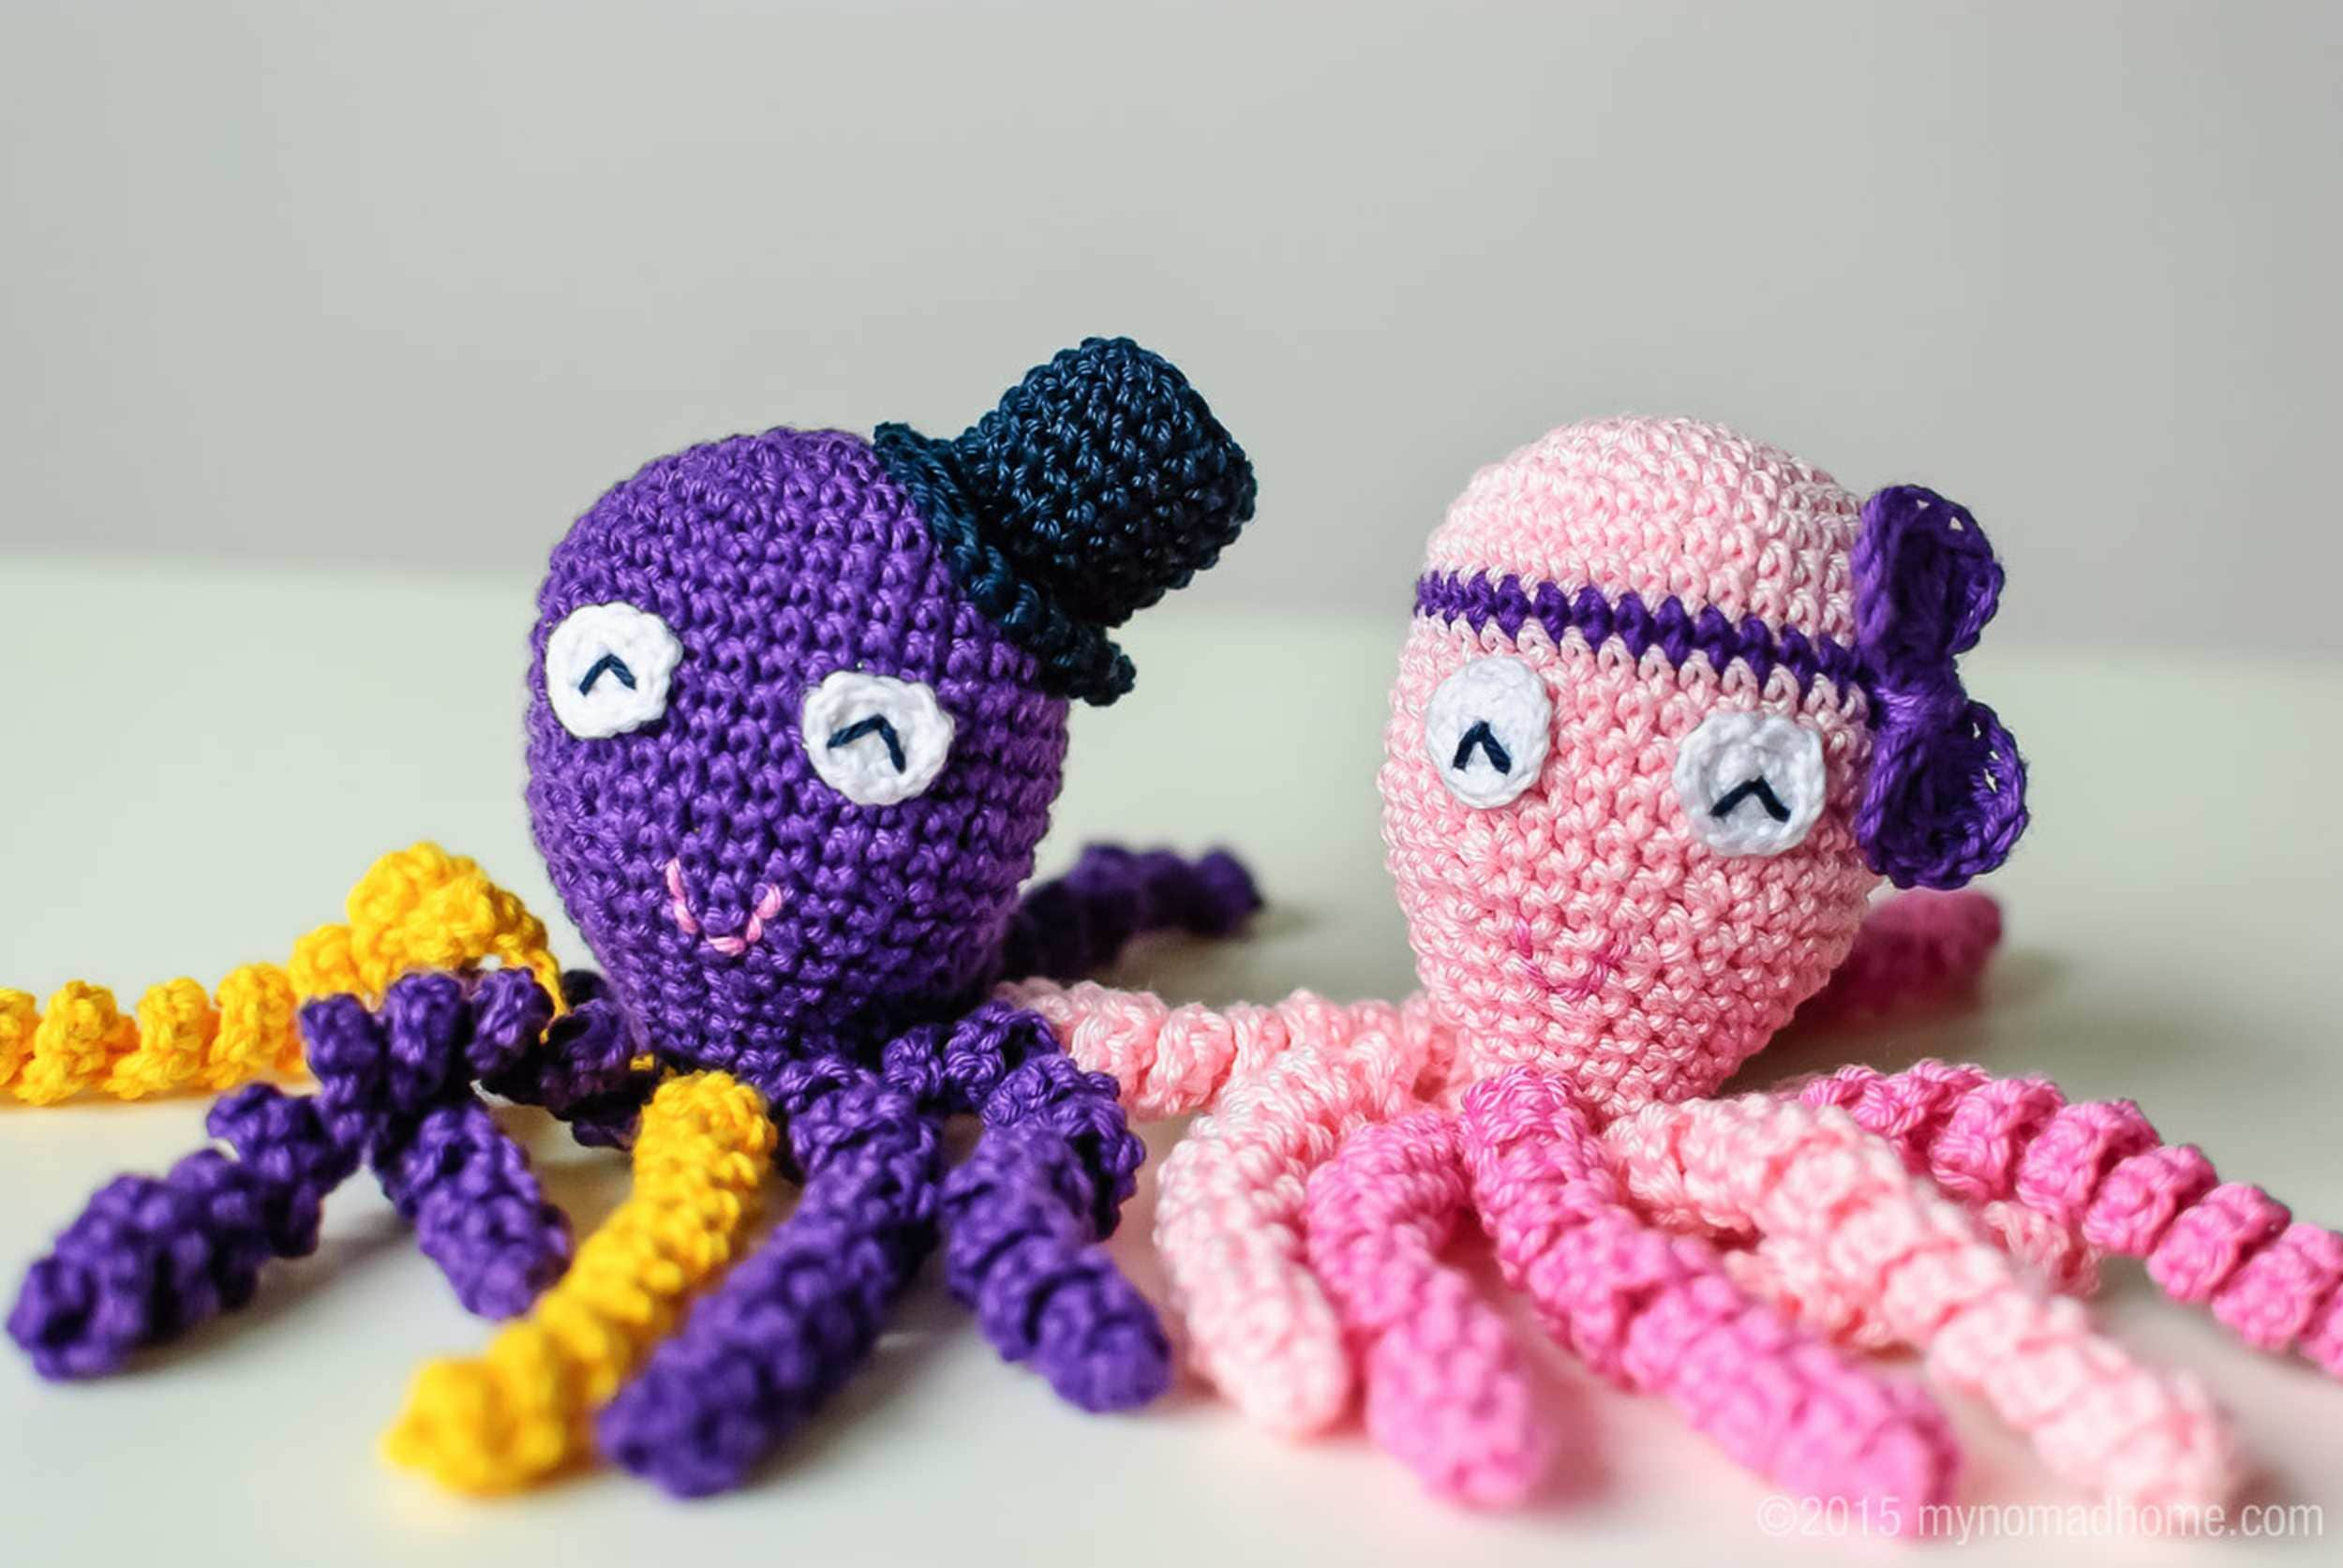 Premature Babies Given Comfort And Health Boost By Crochet